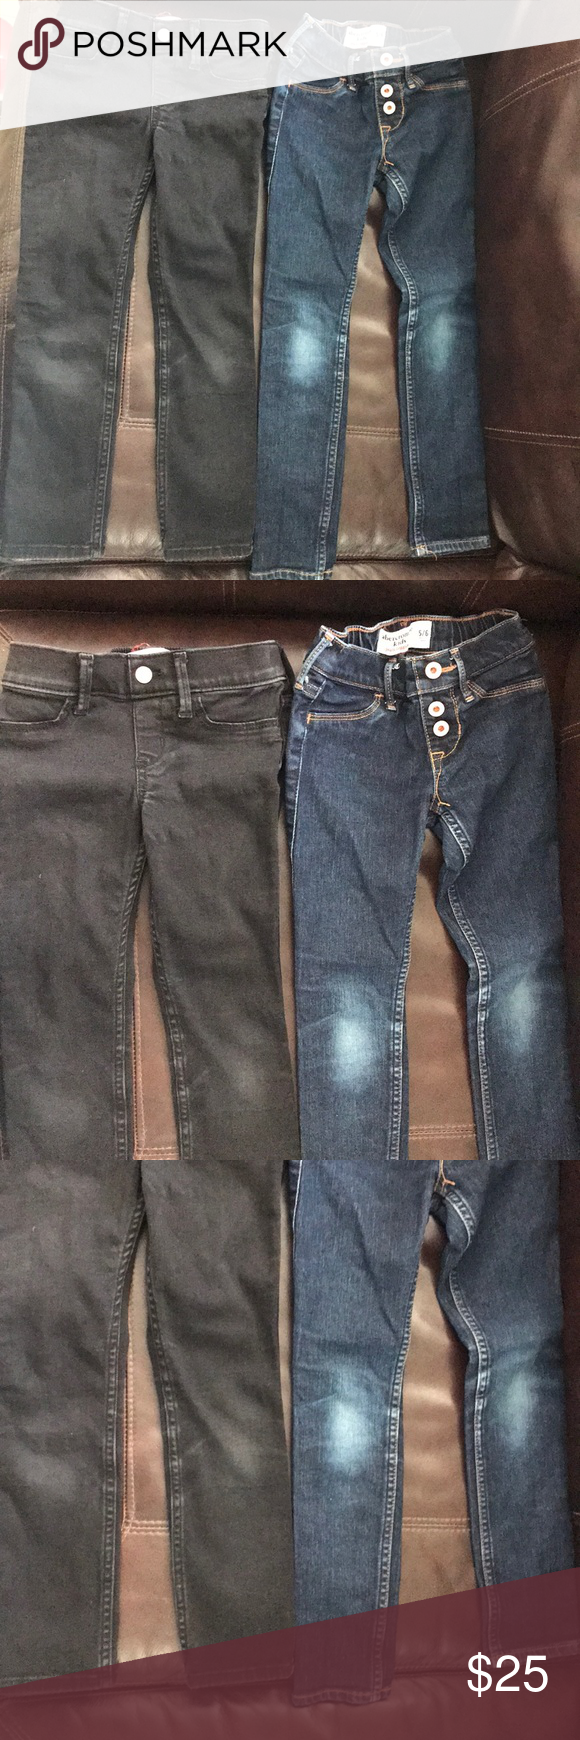 Set of Abercrombie Jean leggings (pull up) This listing includes two pairs  of jean leggings. These have been well loved with plenty of life left in  them. No ... 83b8c1cbd7c